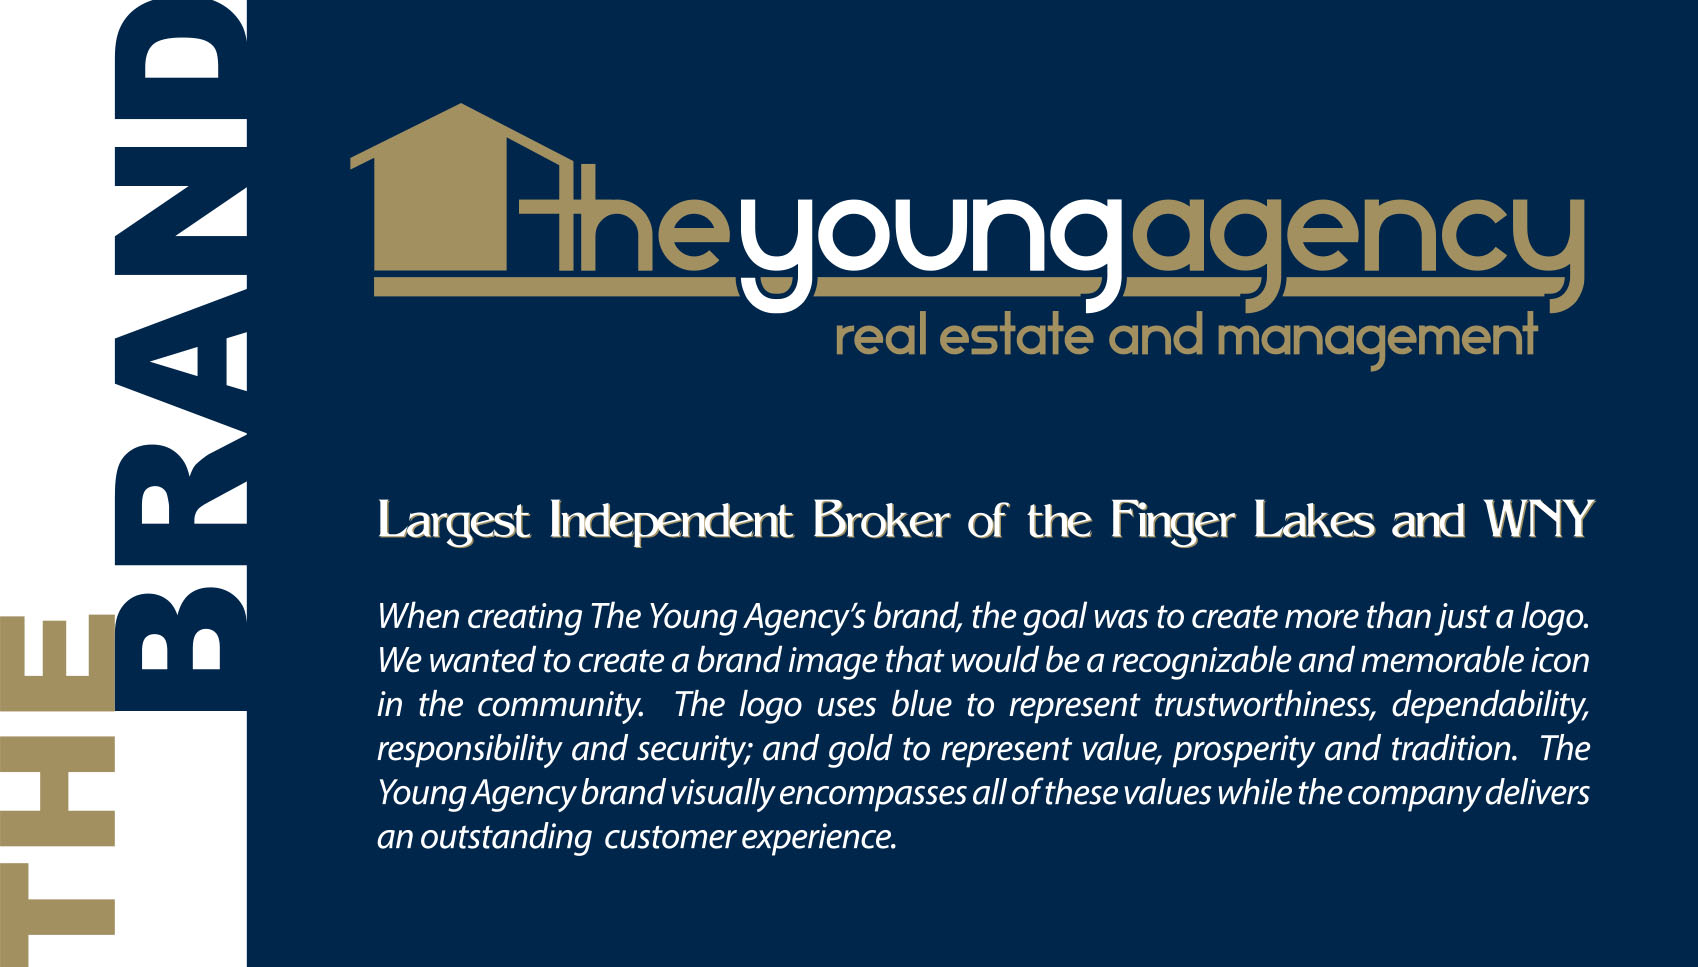 The Young Agency Real Estate & Management - Largest Independent Broker of the Finger Lakes and WNY